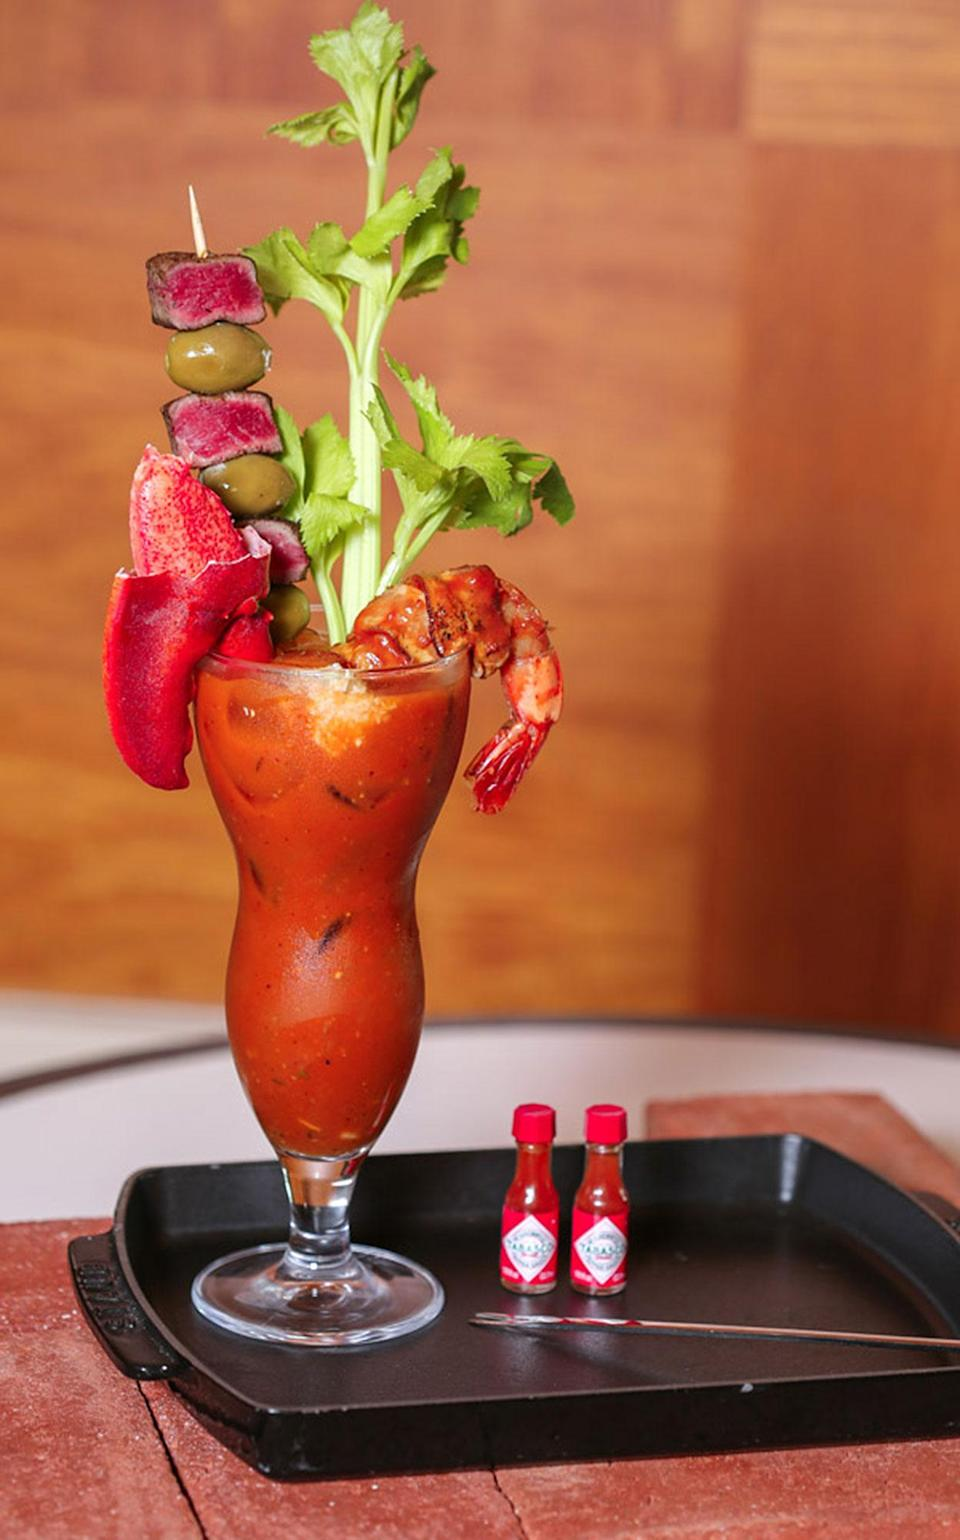 """<p><strong>Where to Get It: </strong>Phin's Bar at the Walt Disney World Swan and Dolphin Resort ($27-30) <strong>Lou's Review: """"</strong>This elegant-looking bar is where you need to go on Sundays between 10 a.m. and 2 p.m. You can order from a selection of 4 """"Proud Marys"""", crafted by the chefs of their signature restaurants (some of the best of the best in Walt Disney World, by the way.) The <strong>Zoo Mary </strong>is Todd English's take on a traditional Bloody Mary, with old bay seasoning, crab louie, tender lobster tail, and a ginormous cocktail shrimp. The <strong>Maria Italiana</strong> is their Il Mulino Trattoria-inspired version, with giardiniera, Italian seasoning, and has <em>4</em> giant antipasti skewers. Like sushi? The subtly spicy <strong>Dragon Mary</strong> is inspired by the sushi chefs at Kimonos, and contains yuzu juice, sriracha, and a dragon roll skewer. And finally, my favorite of the four is their Don Shula's-inspired <strong>Hail Mary</strong> (pictured) includes tender cubes of with filet mignon, lobster claw, BBQ shrimp, and steak sauce. (Note: These are also all available as non-alcoholic options.)""""</p>"""